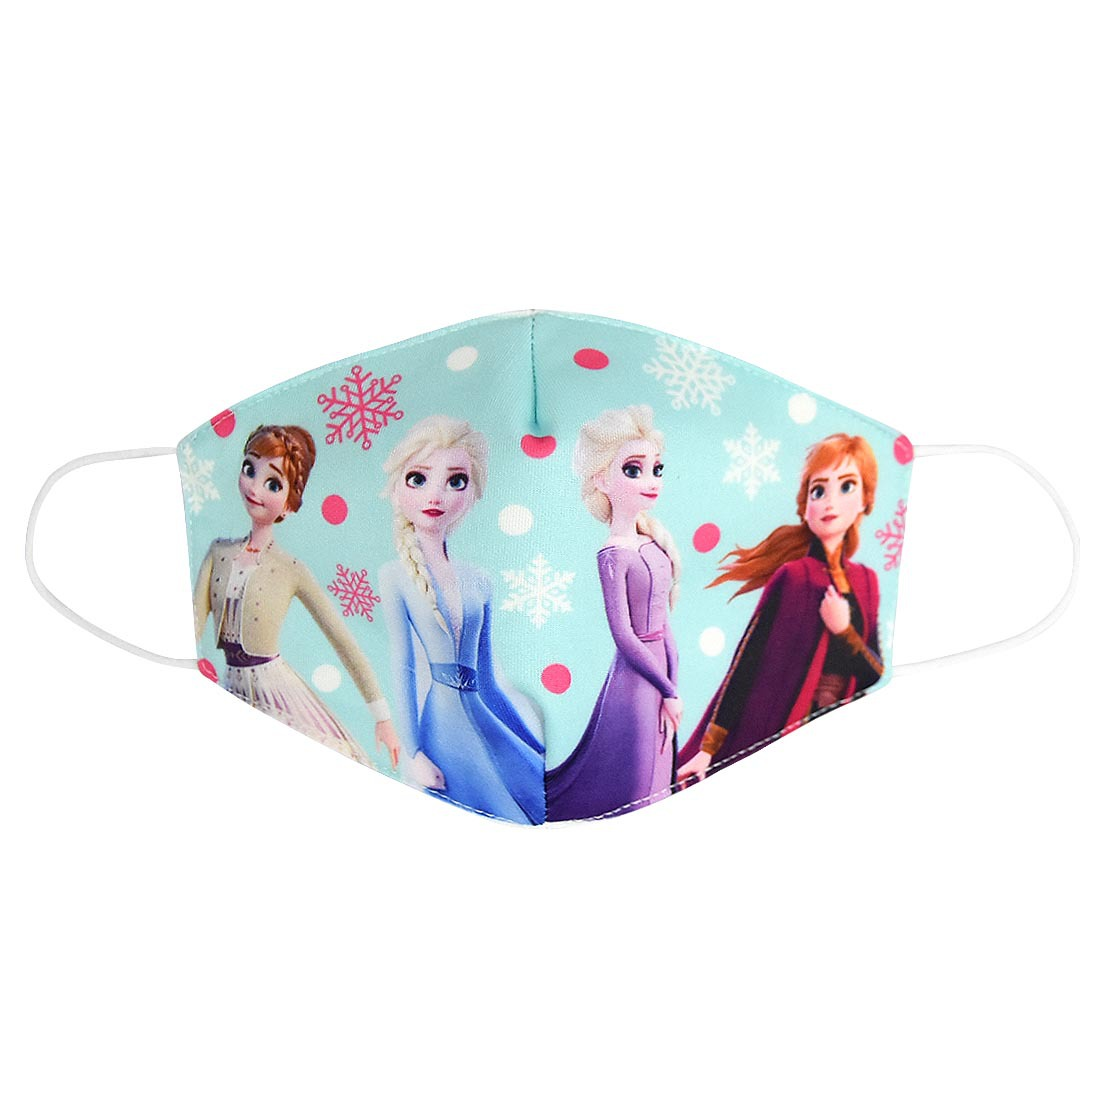 Cartoon Print Boys Girls Dustproof Printed Masks For Adult And Kids Face Mouth Mask 3